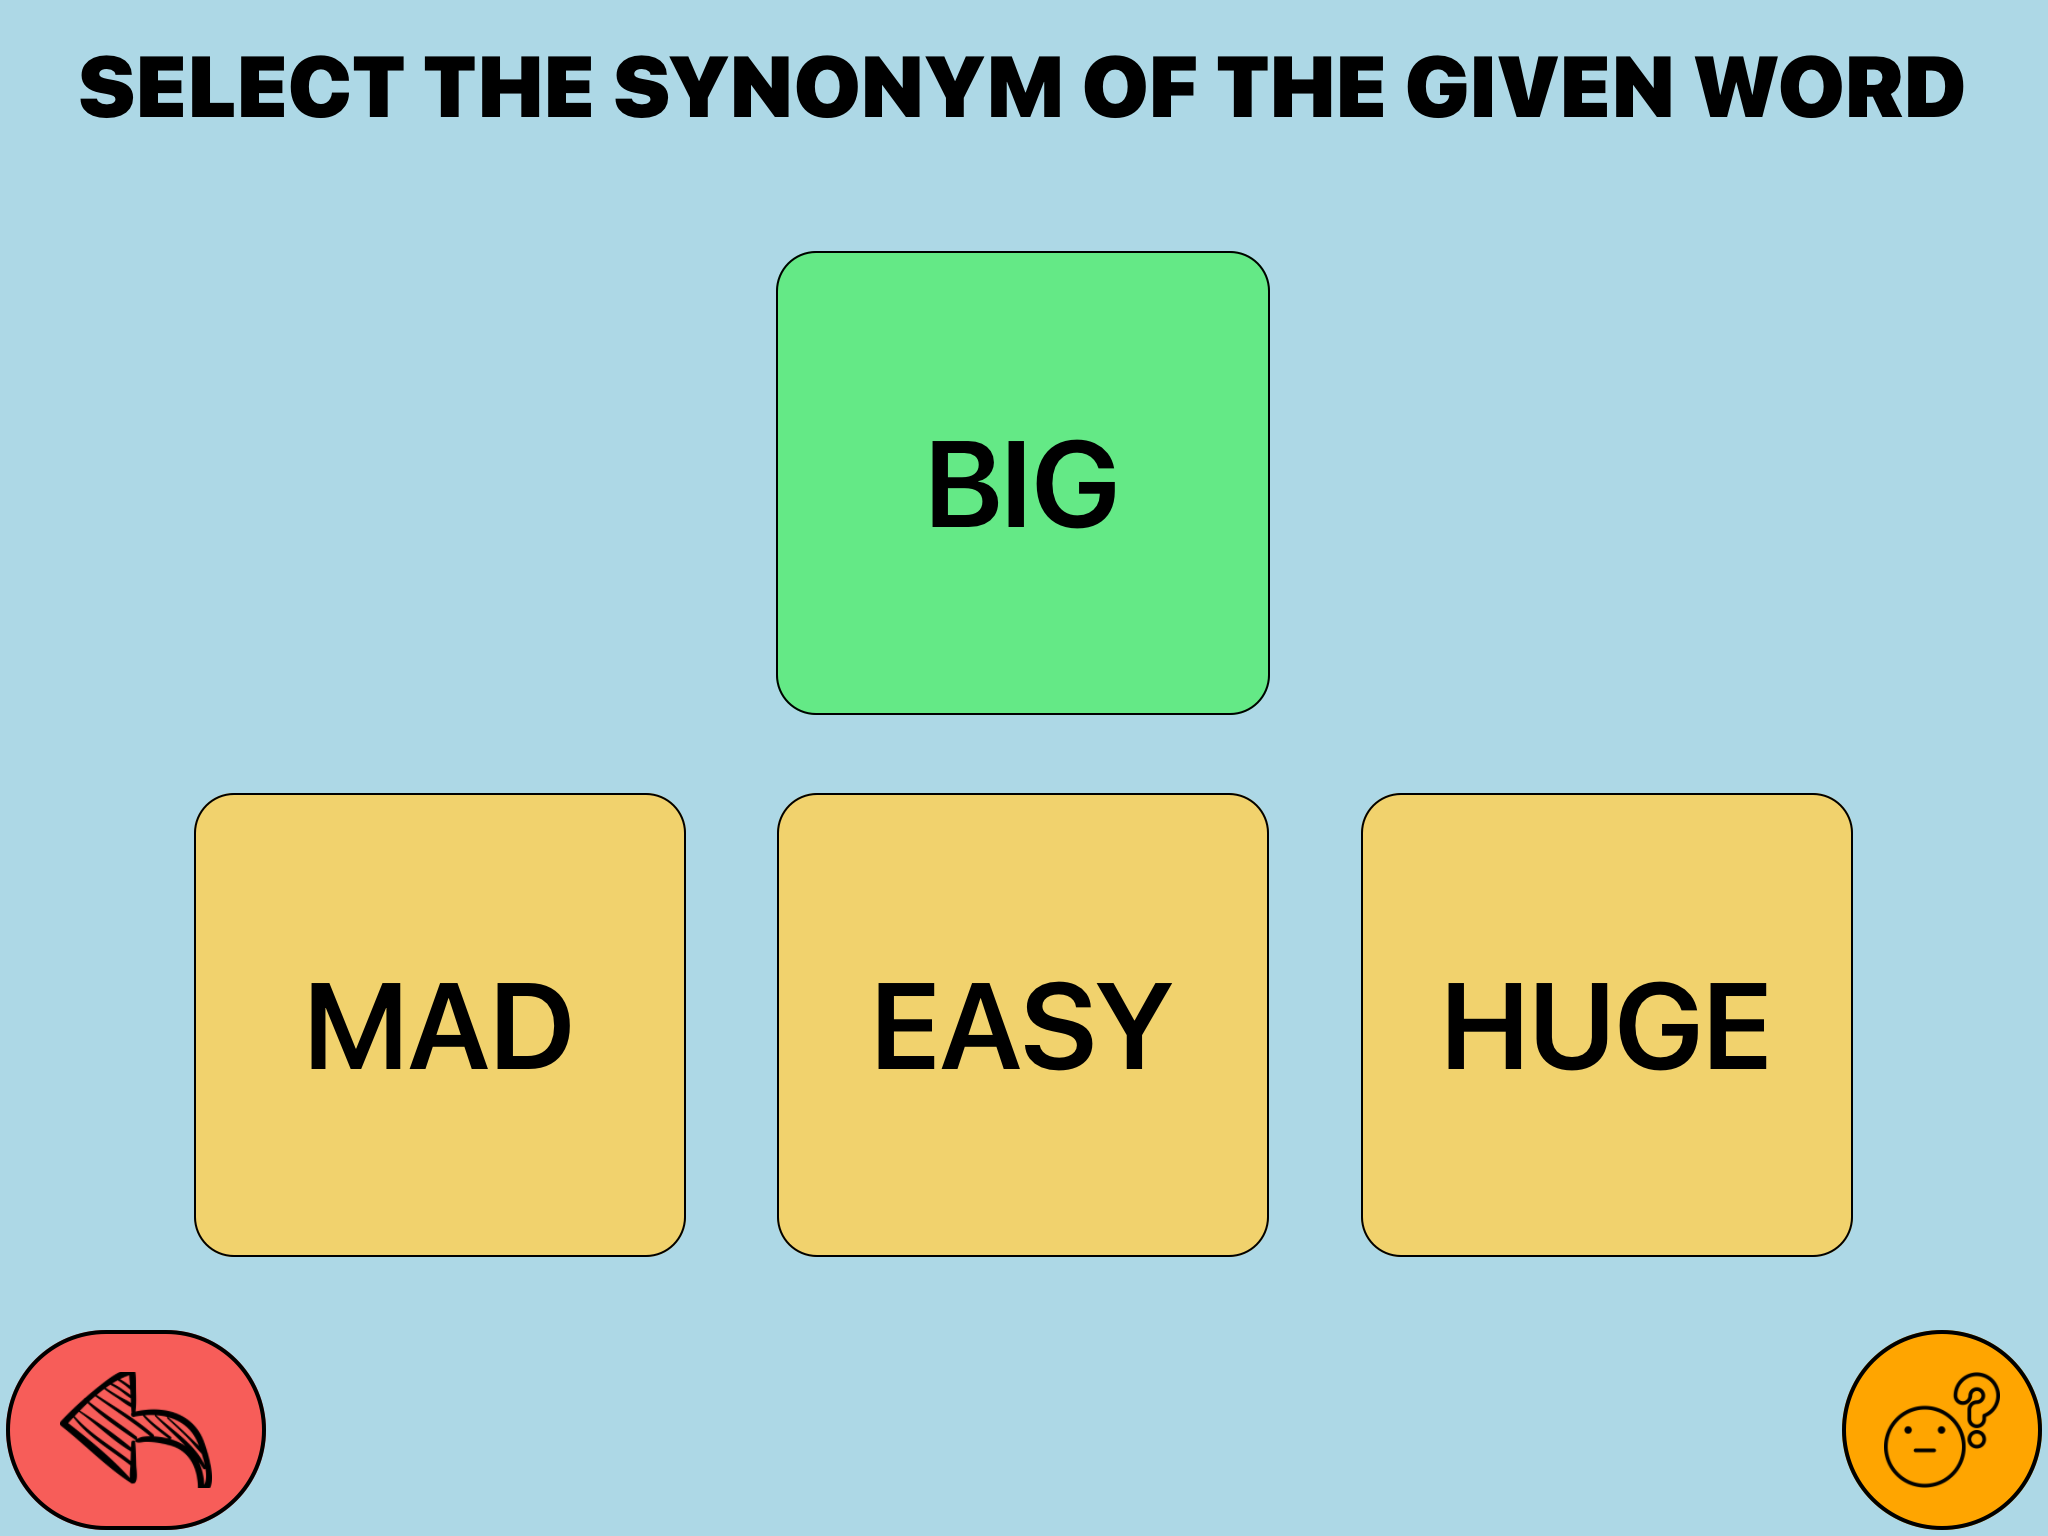 """Select the synonym of the given word: Big""; choices  are Made, Easy Huge. (Double tap on desired answer choice.)"